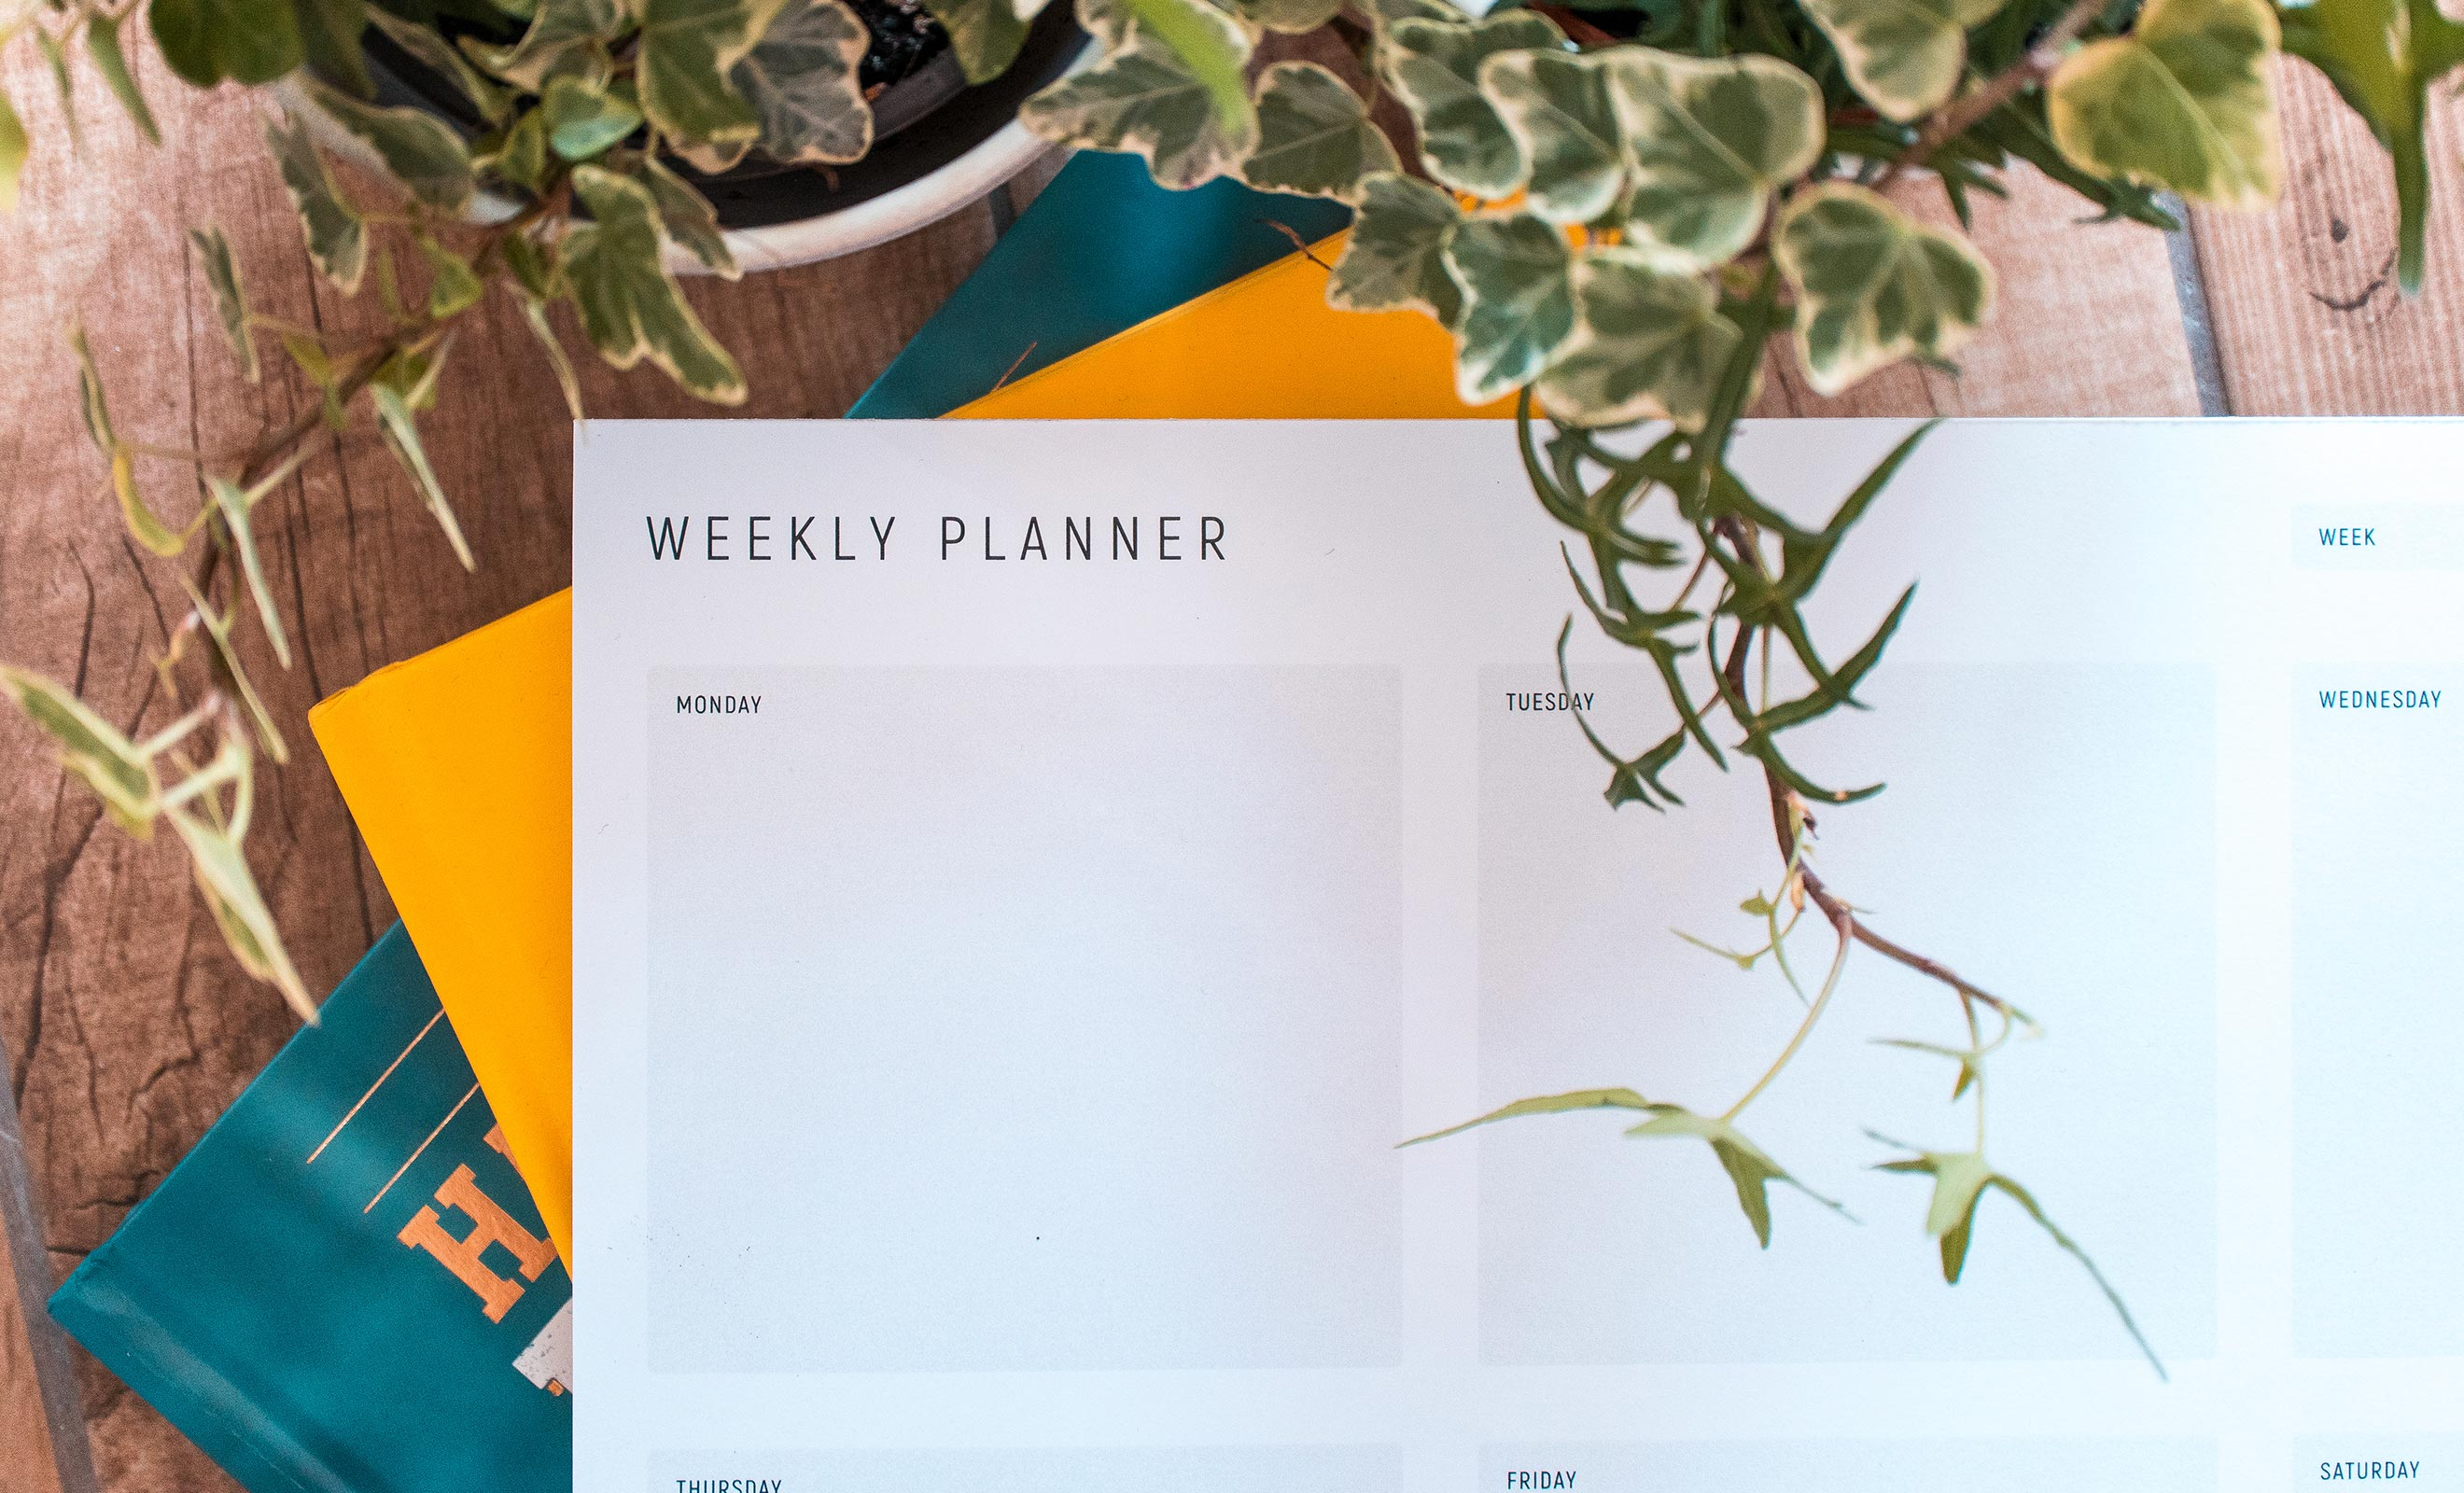 Planning your week just got easier